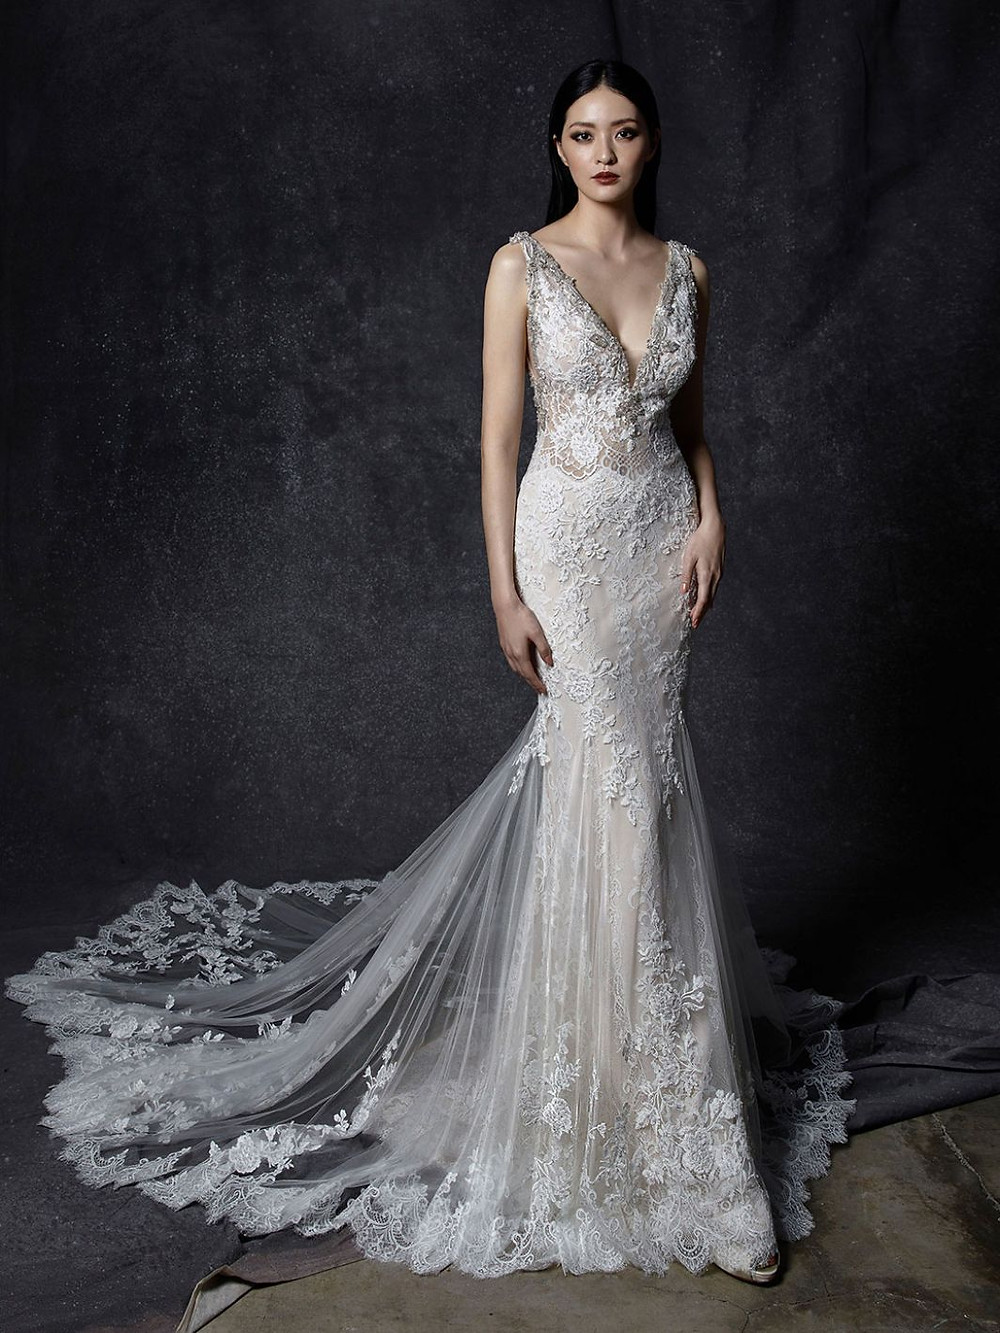 An Enzoani v neck, lace mermaid wedding dress with a long train